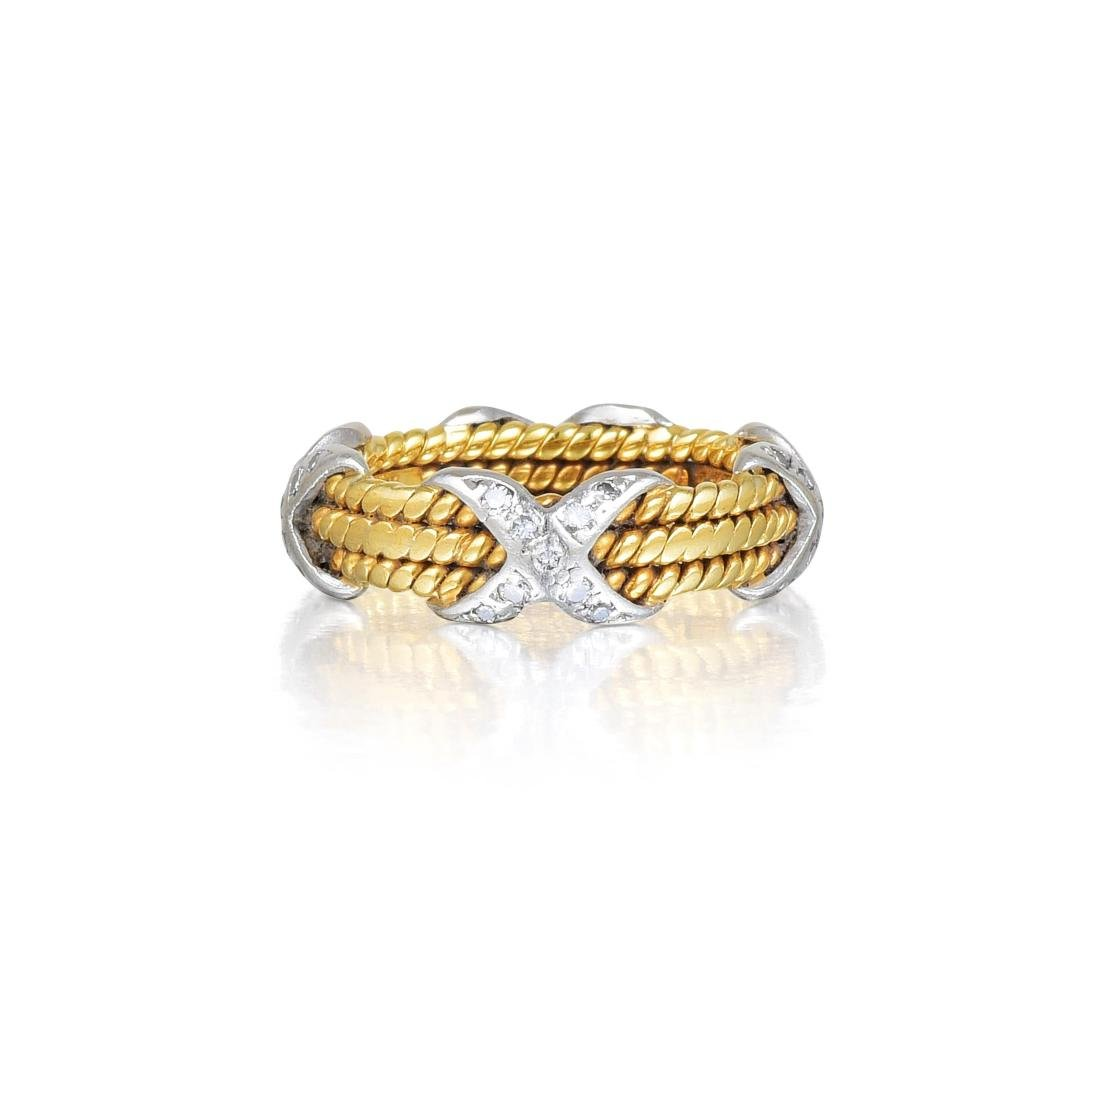 "Tiffany & Co. by Schlumberger Small Diamond ""Rope"" Ring"